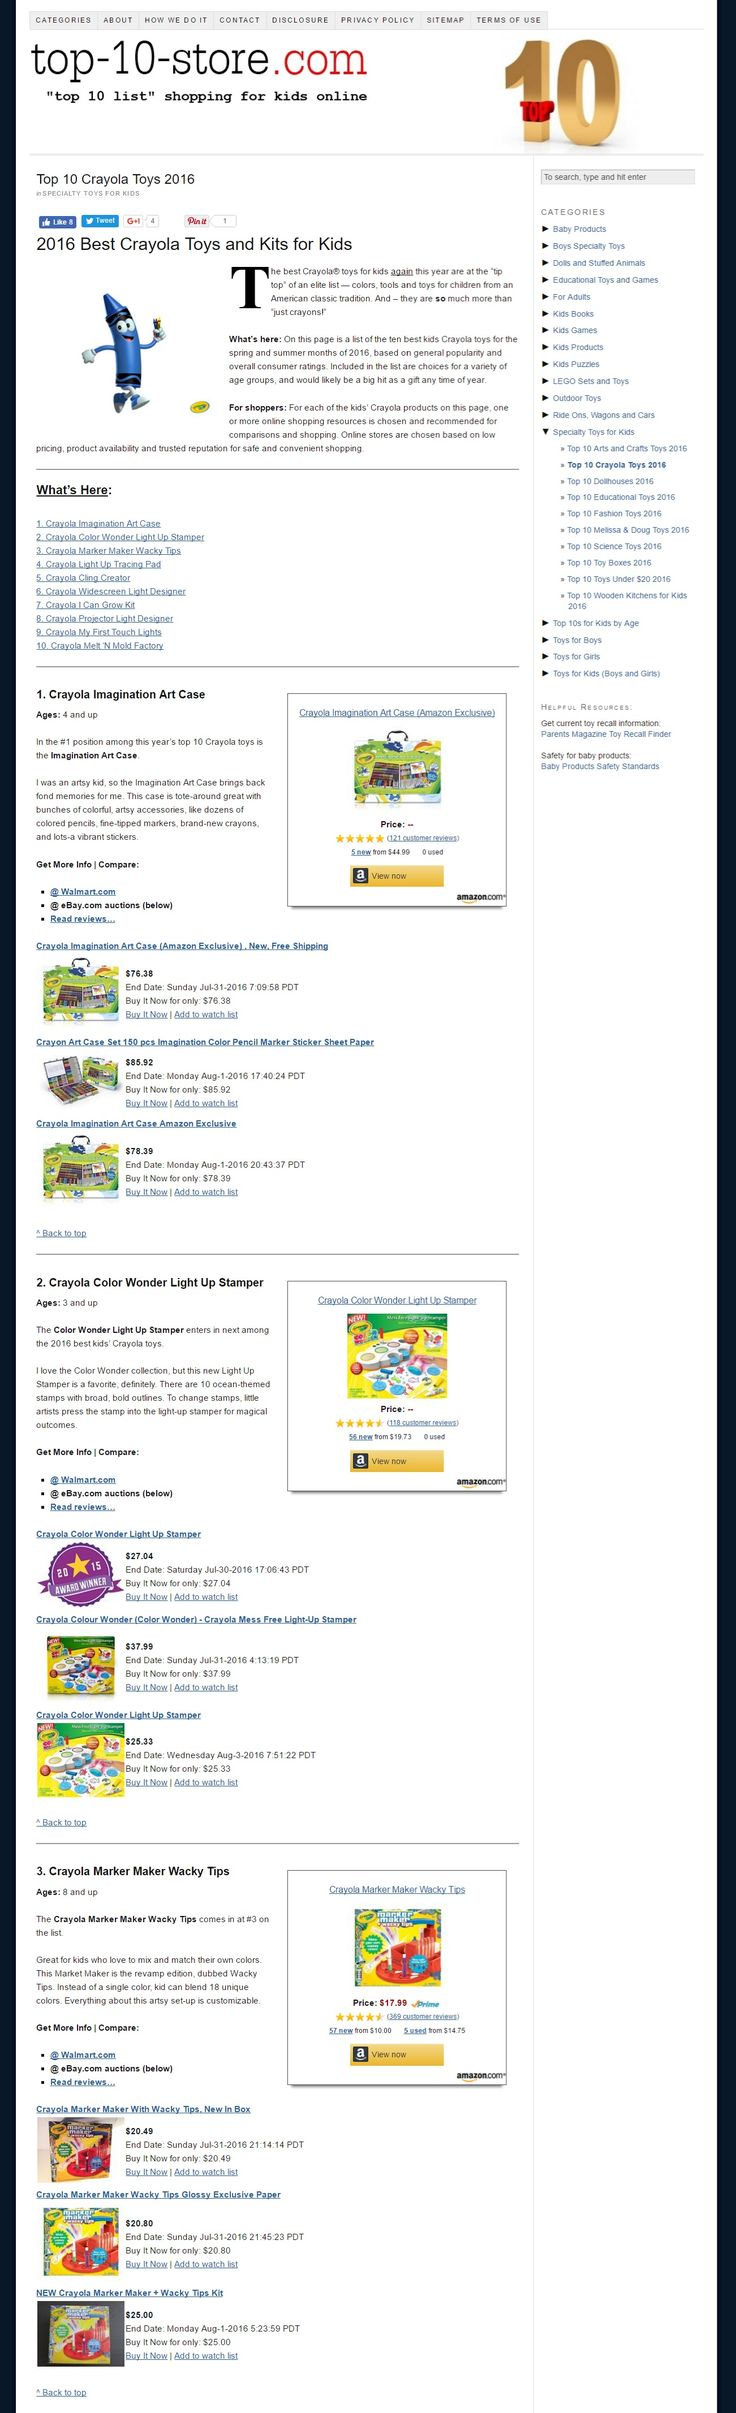 Best Crayola Toys and Kits for Kids 2016 Top 10 List